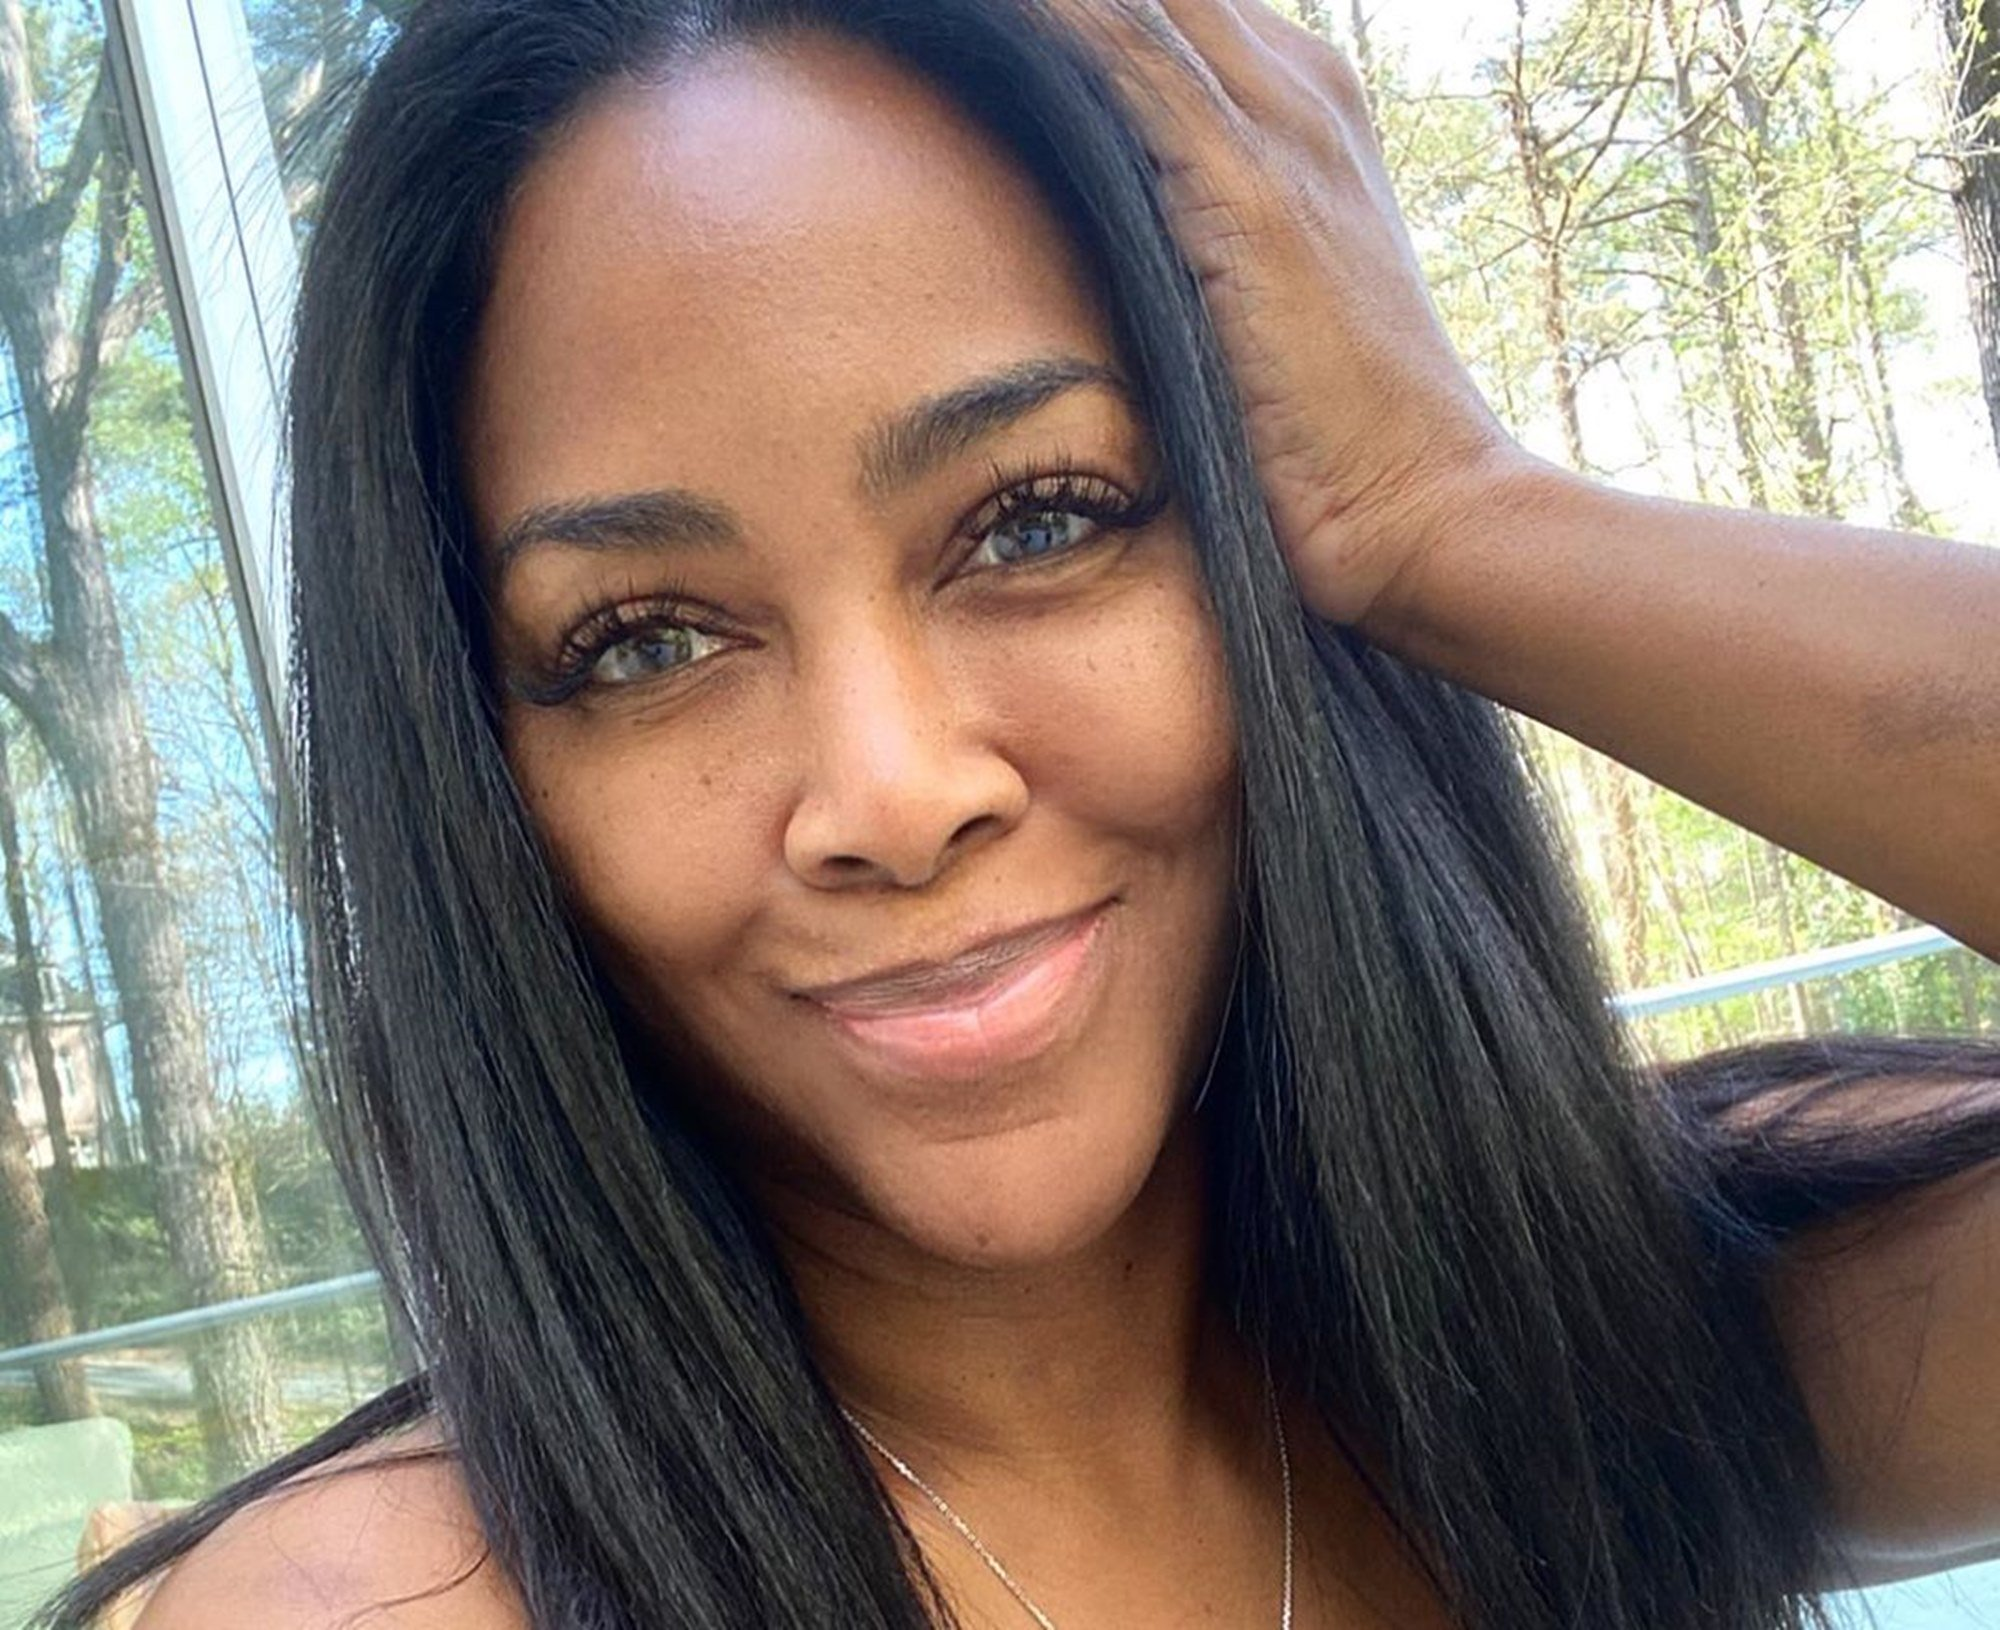 Kenya Moore Shares A Throwback Photo From Her Modeling Days – See it Here